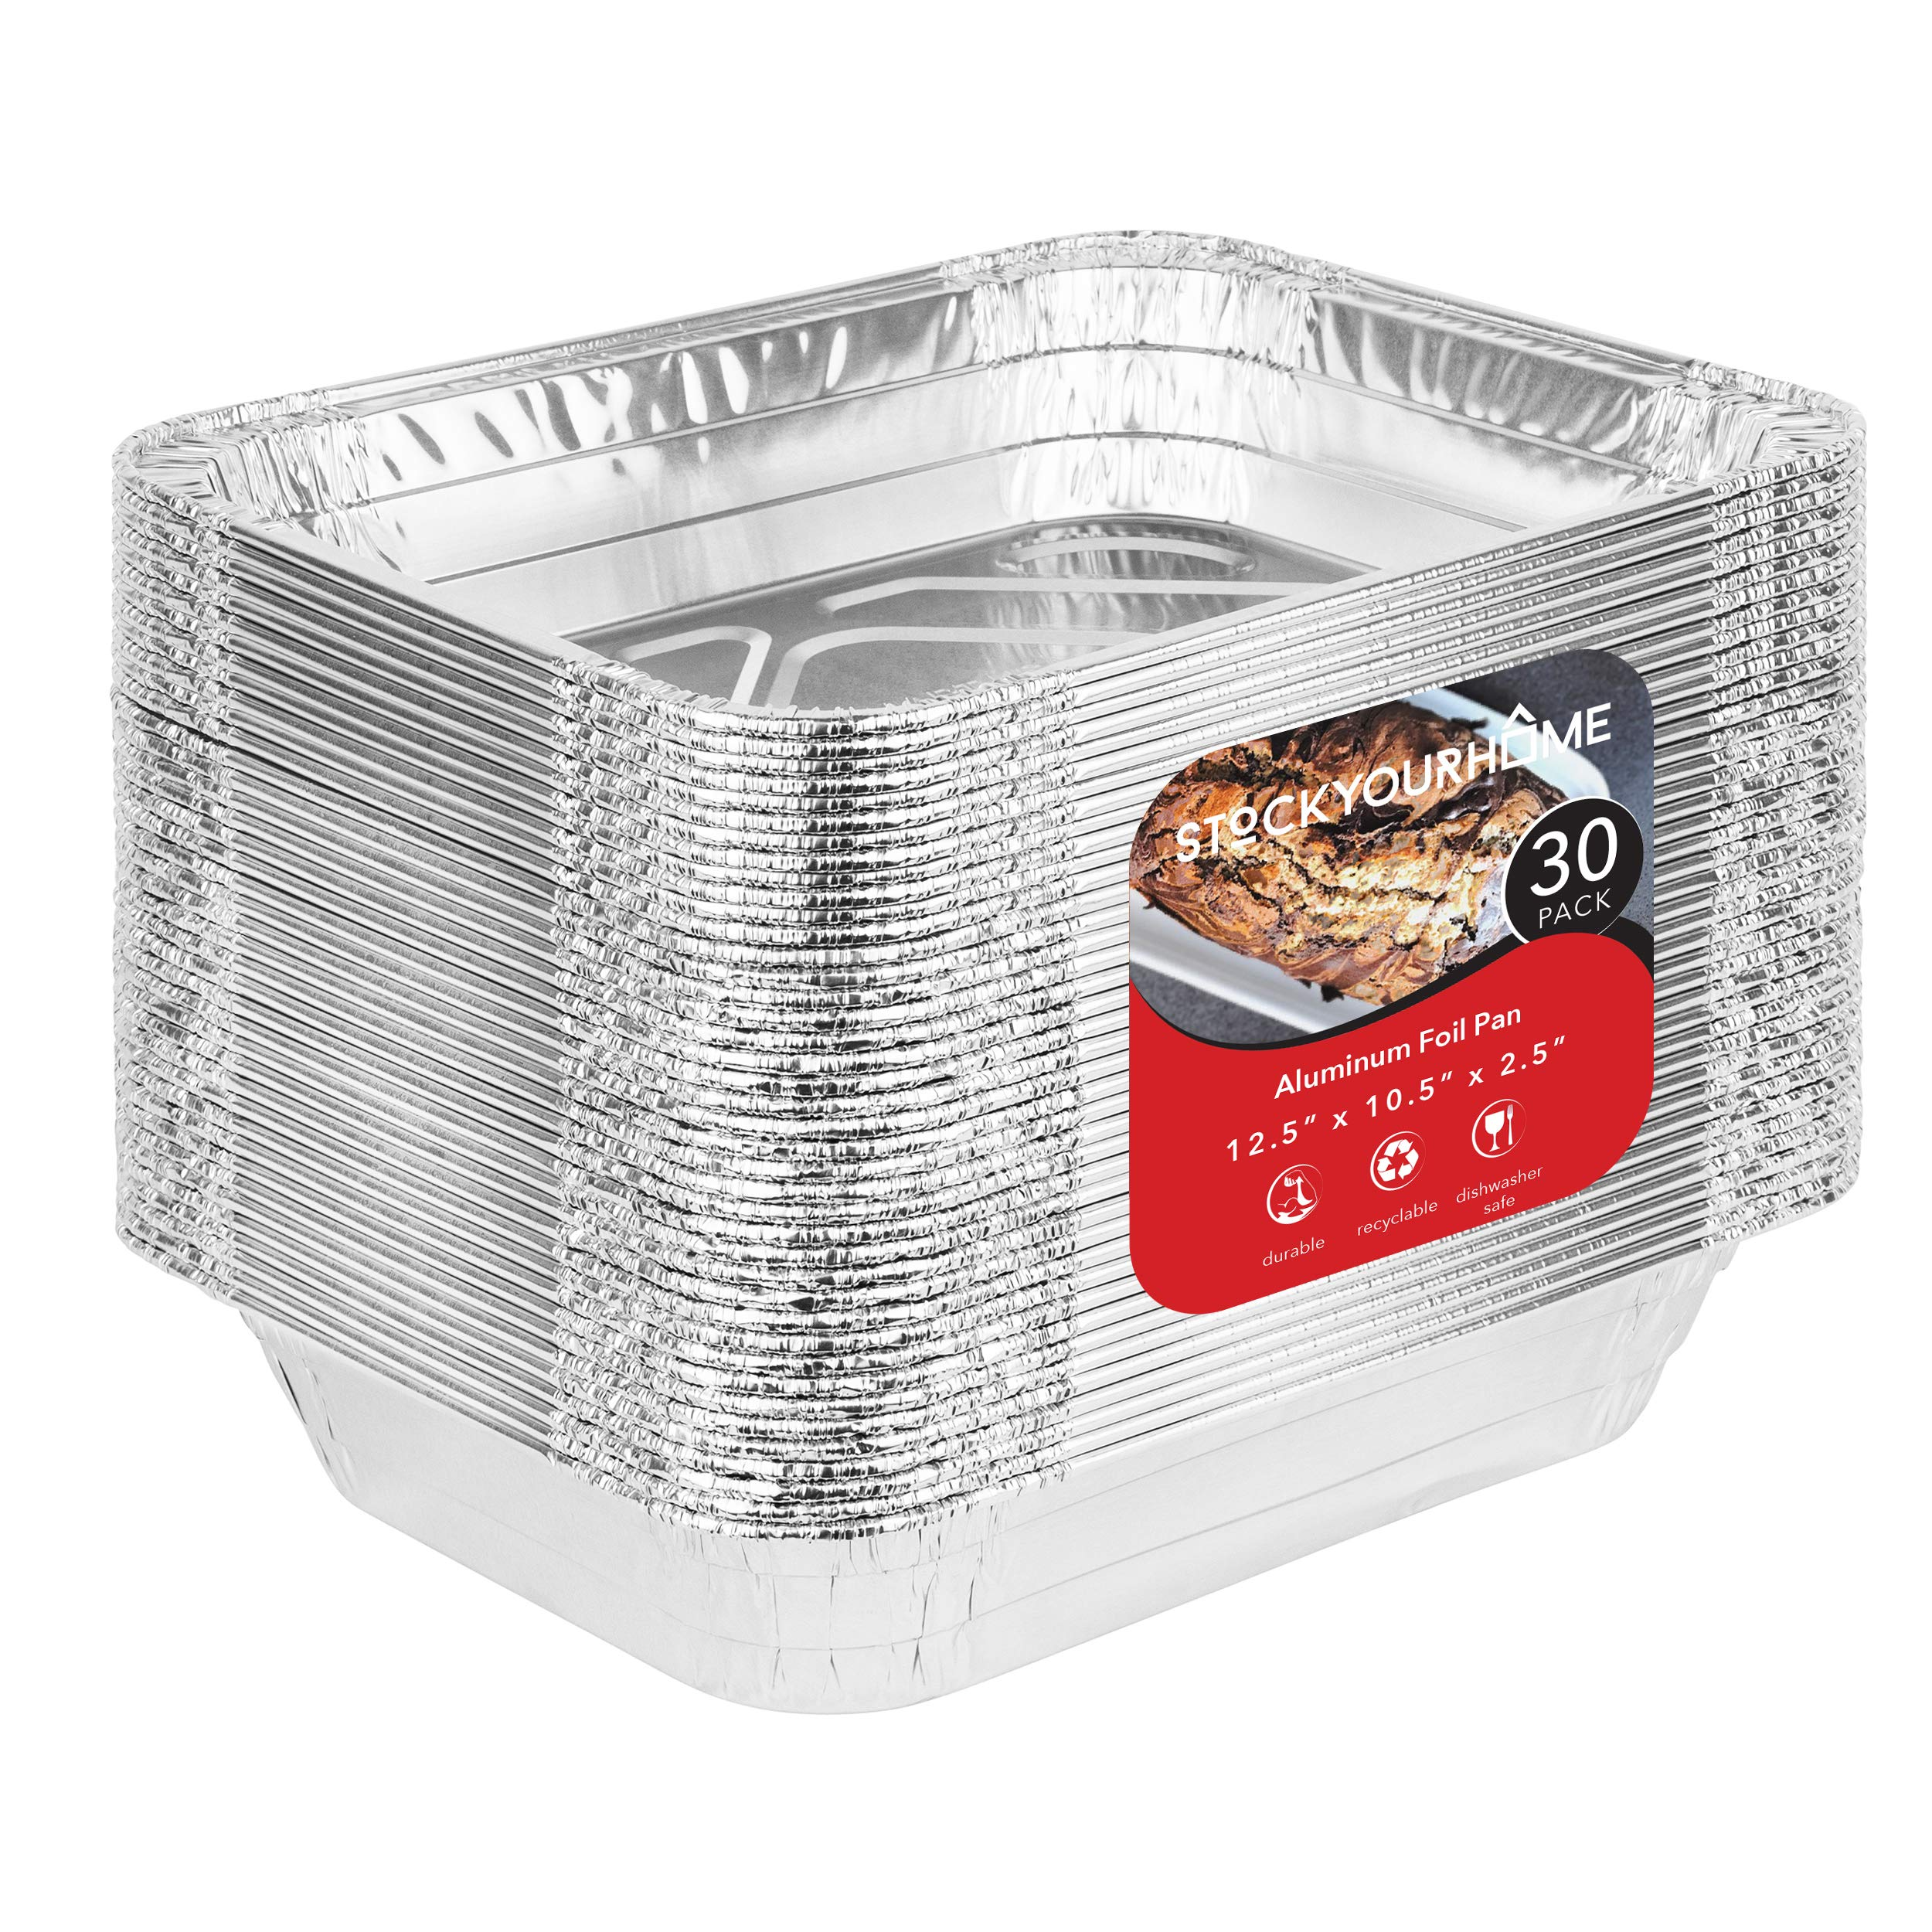 Aluminum Pans 9x13 Disposable Foil Pans (30 Pack) - Half Size Steam Table Deep Pans - Tin Foil Pans Great for Cooking, Heating, Storing, Prepping Food by Stock Your Home